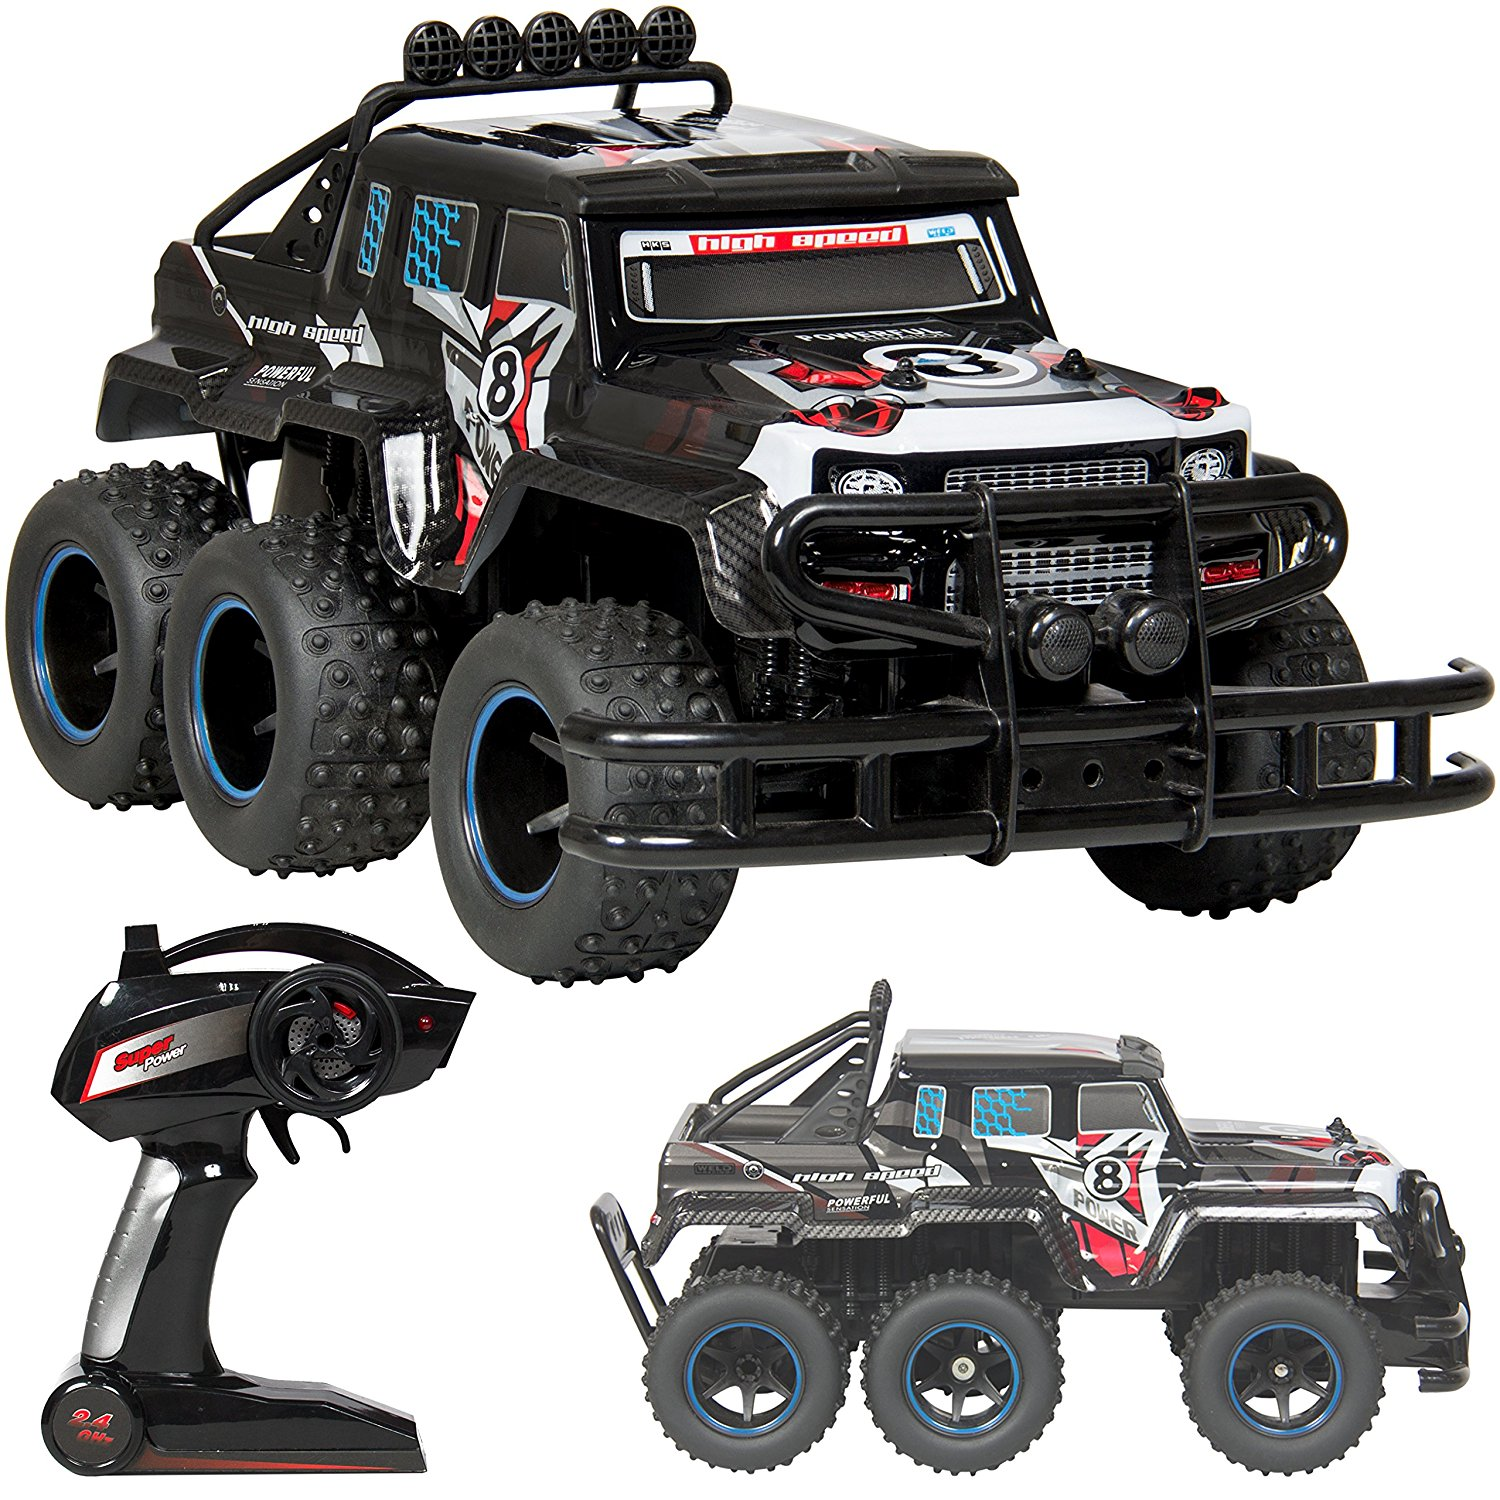 Best Choice Products 2.4 GHz RC Speed Truck 6X6 Drive High Performance 1:10 Scale Remote Control Car- Black